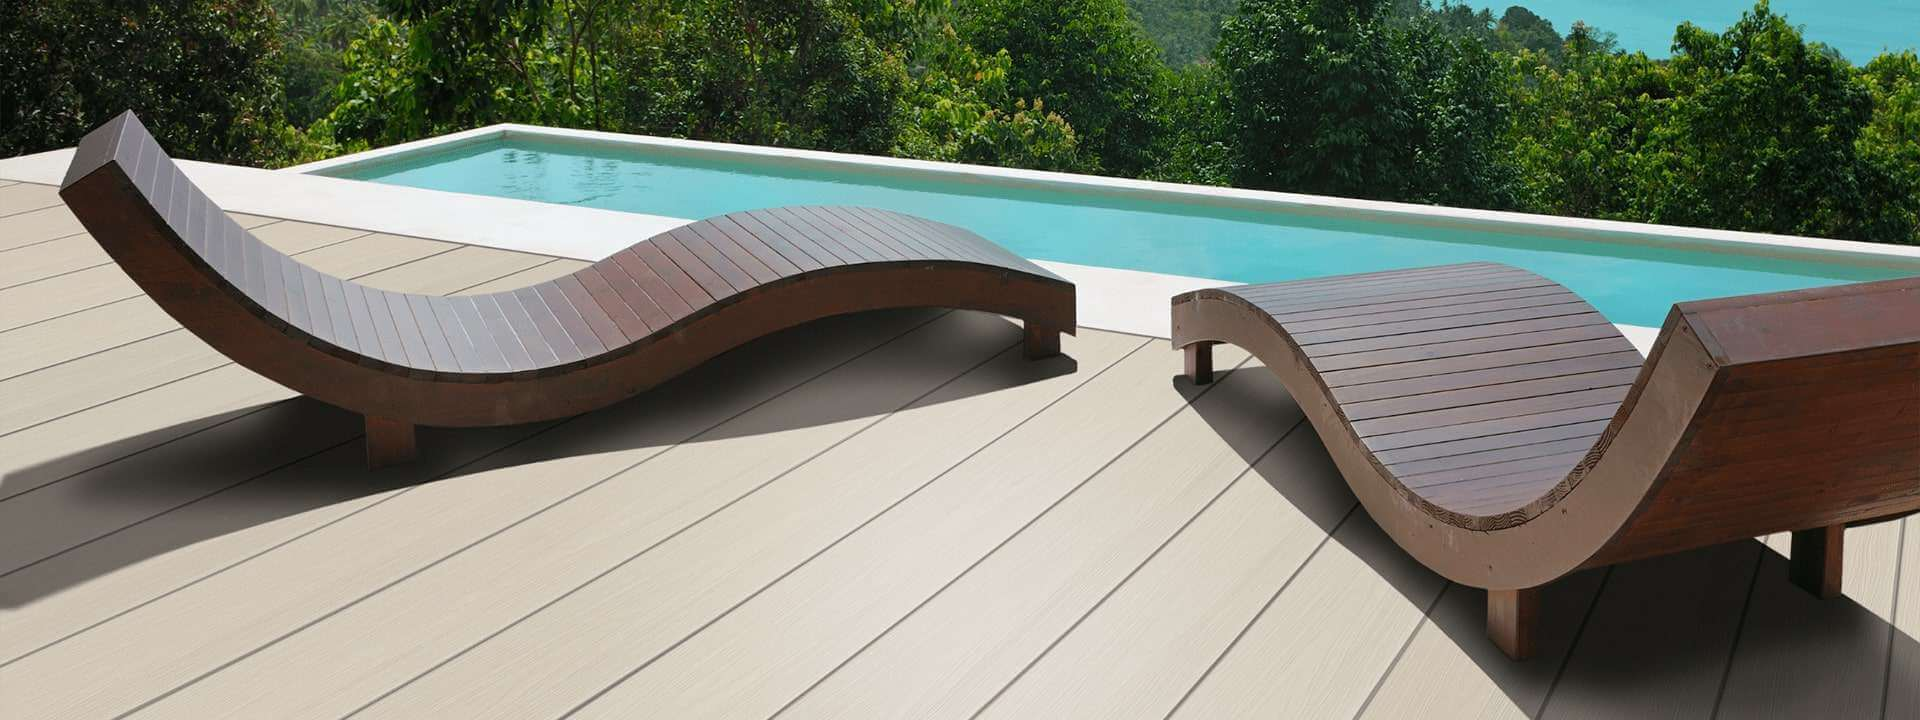 HD Deck Pro Luxury Deck lounge chairs pool